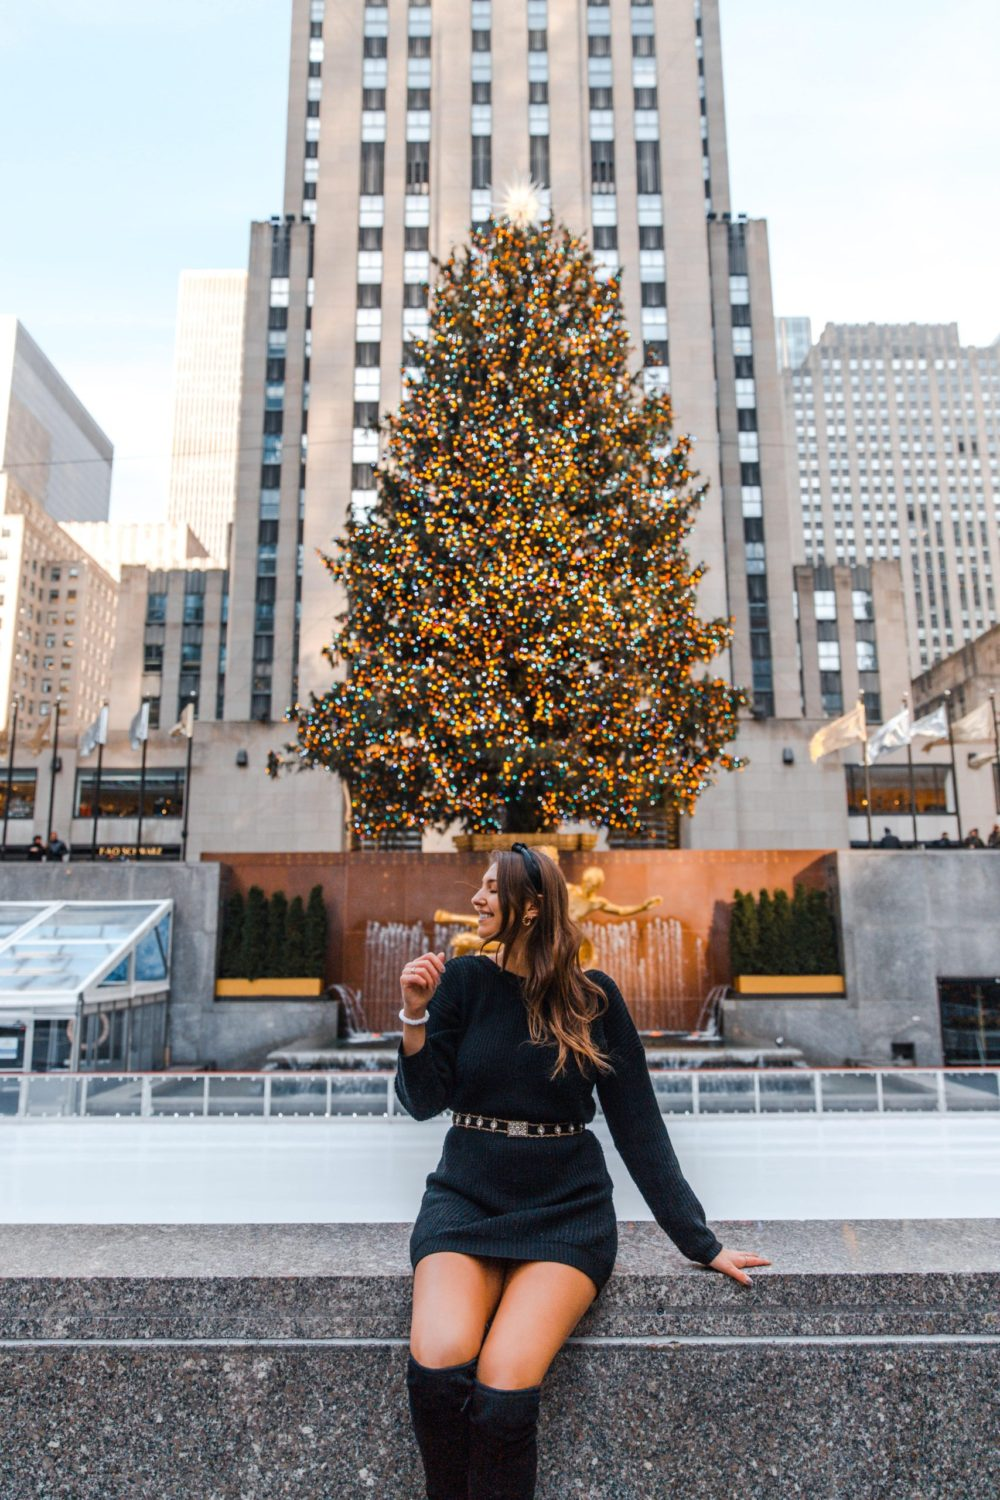 The 10 Best NYC Christmas Instagram Spots | Christmas in New York | Dana Berez NYC Blogger | Rockefeller Christmas Tree